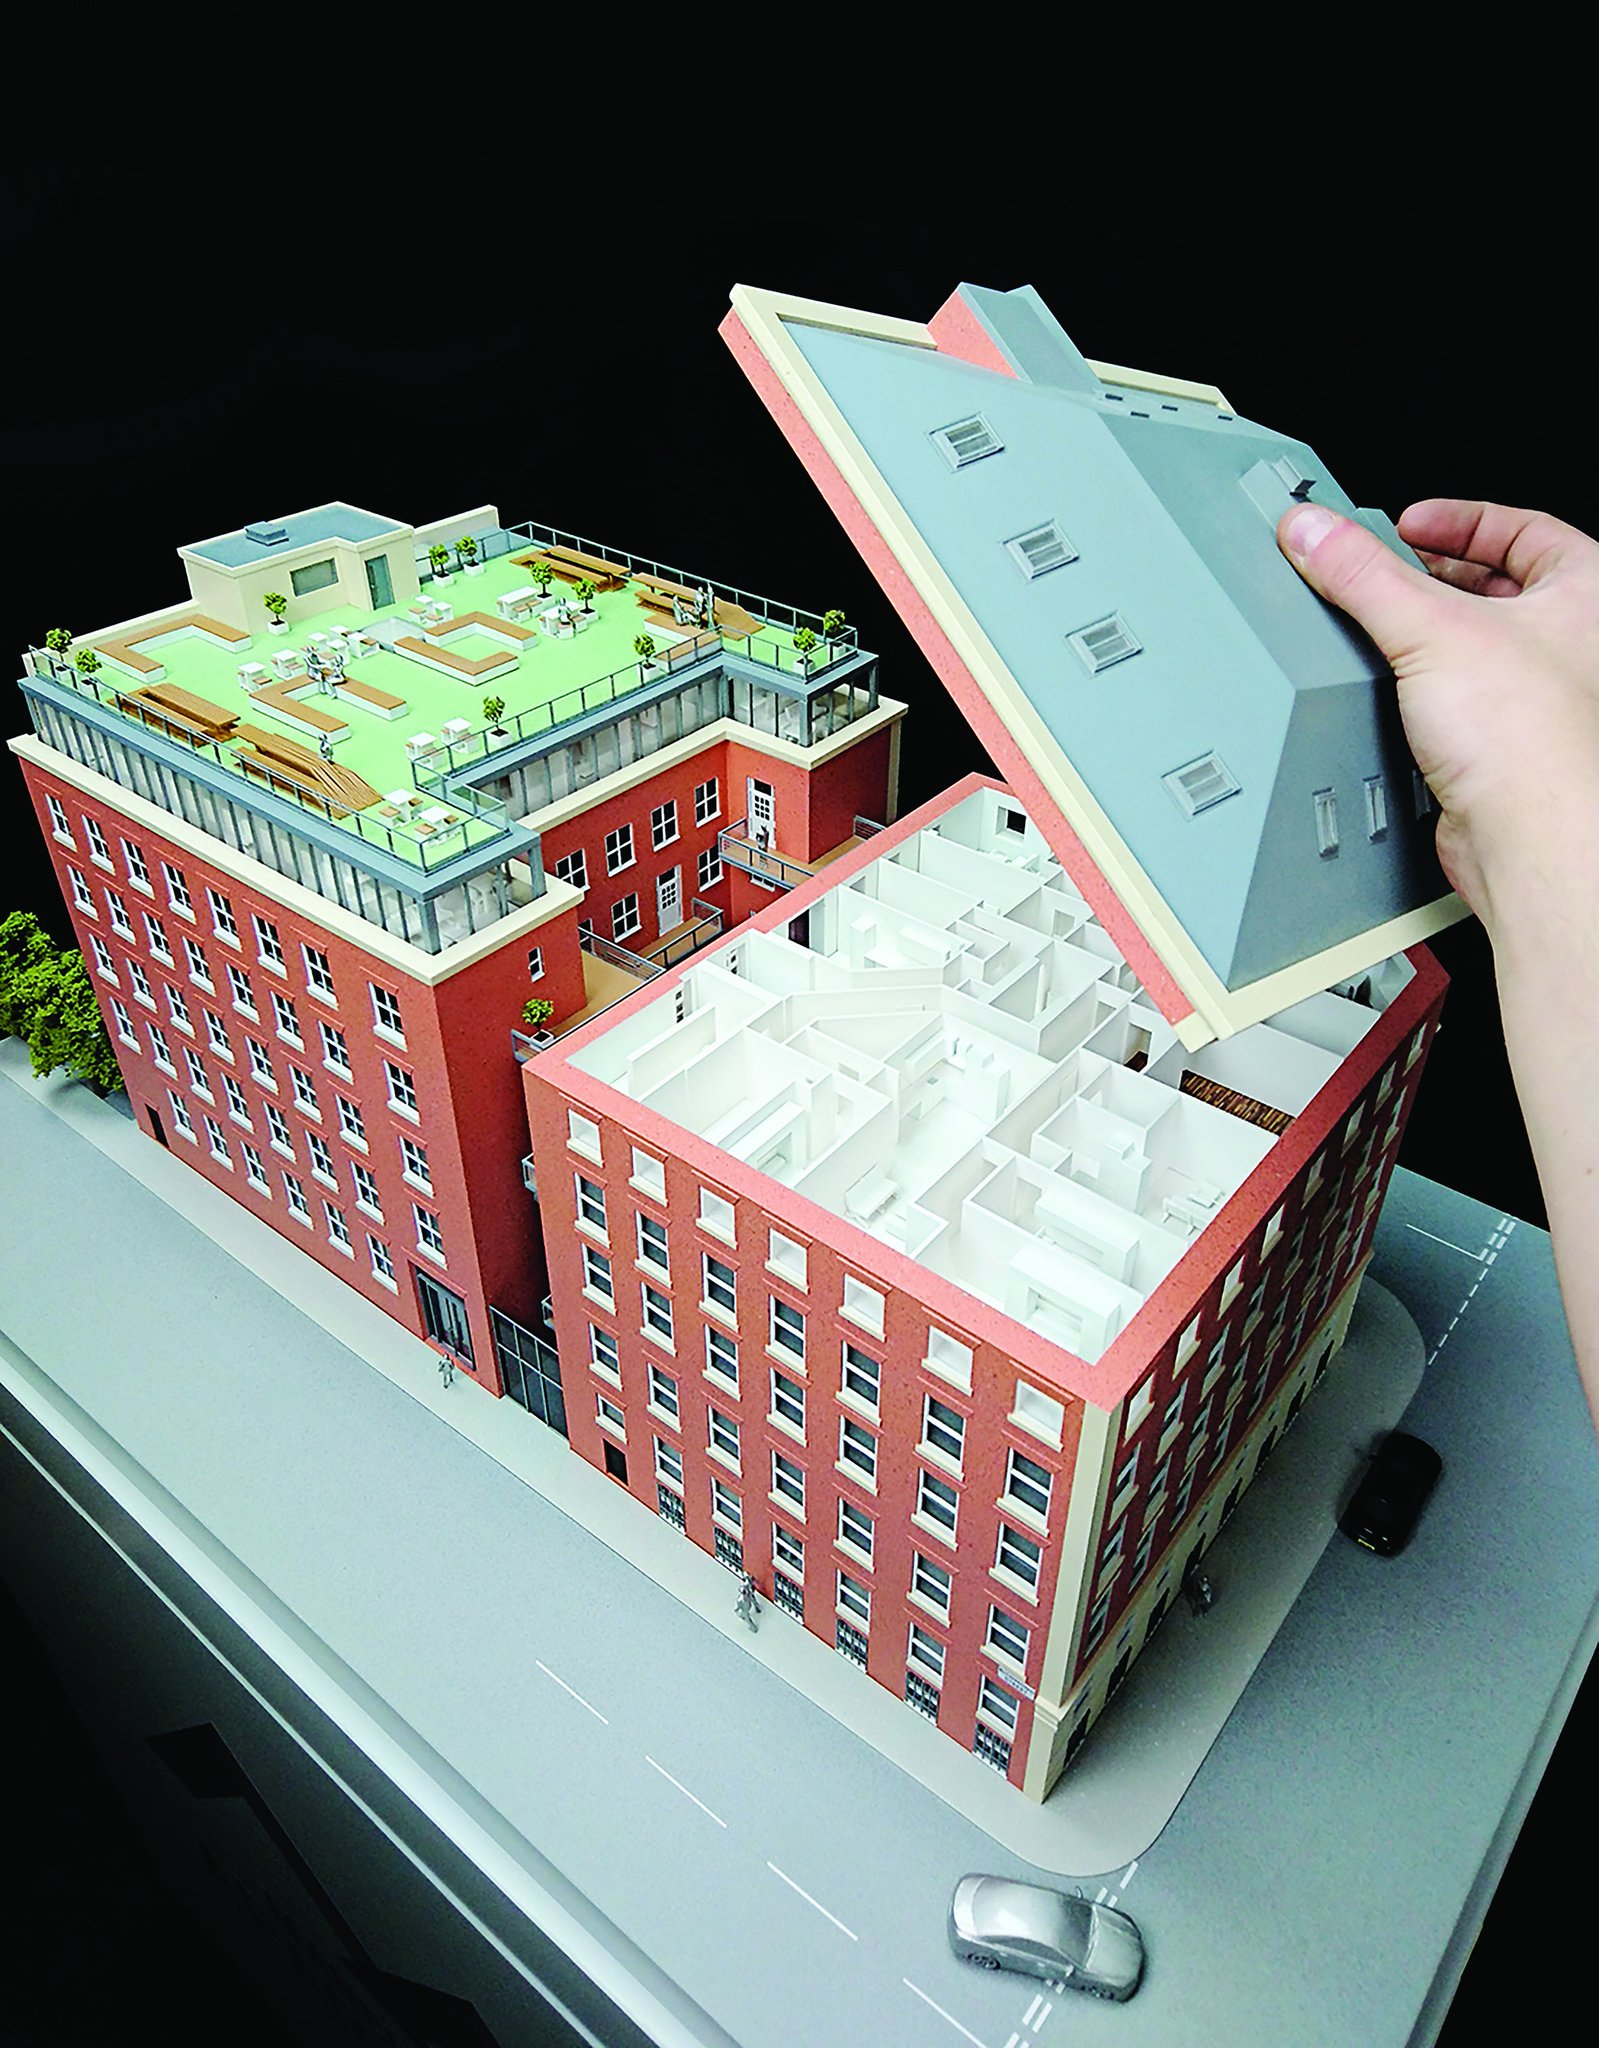 An example of a 3D printed architectural model by Hobs 3D. Image via Hobs 3D